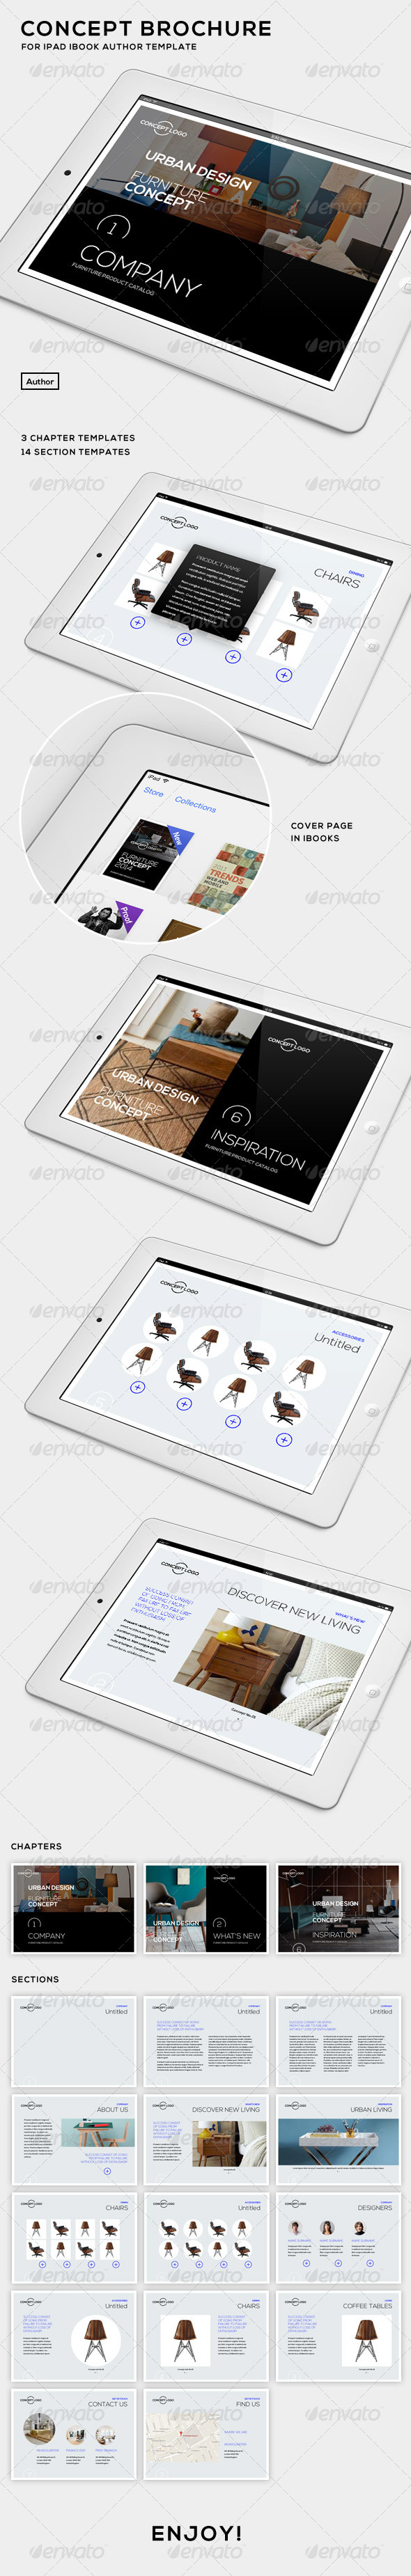 GraphicRiver Concept Brochure for iPad iBooks Author Template 7521770